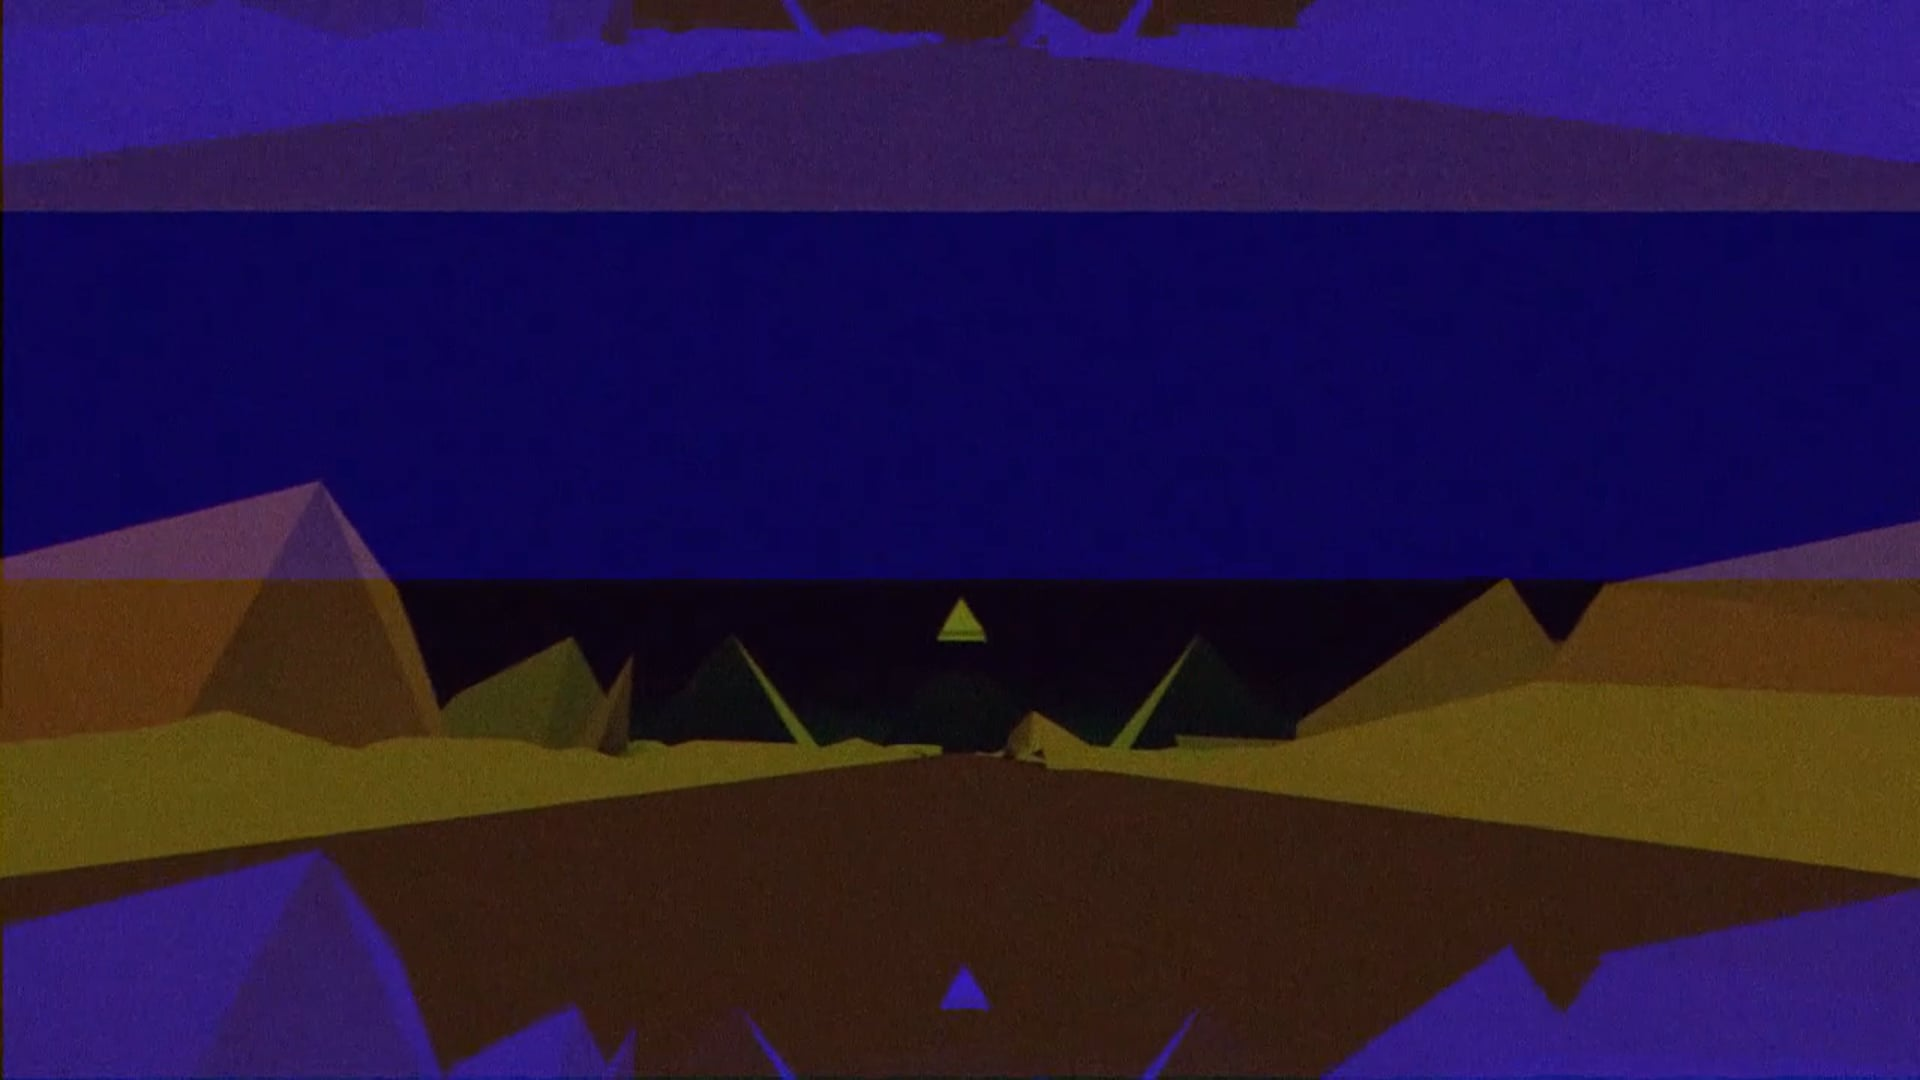 Death Grips - Artificial Death in the West (fan visuals)